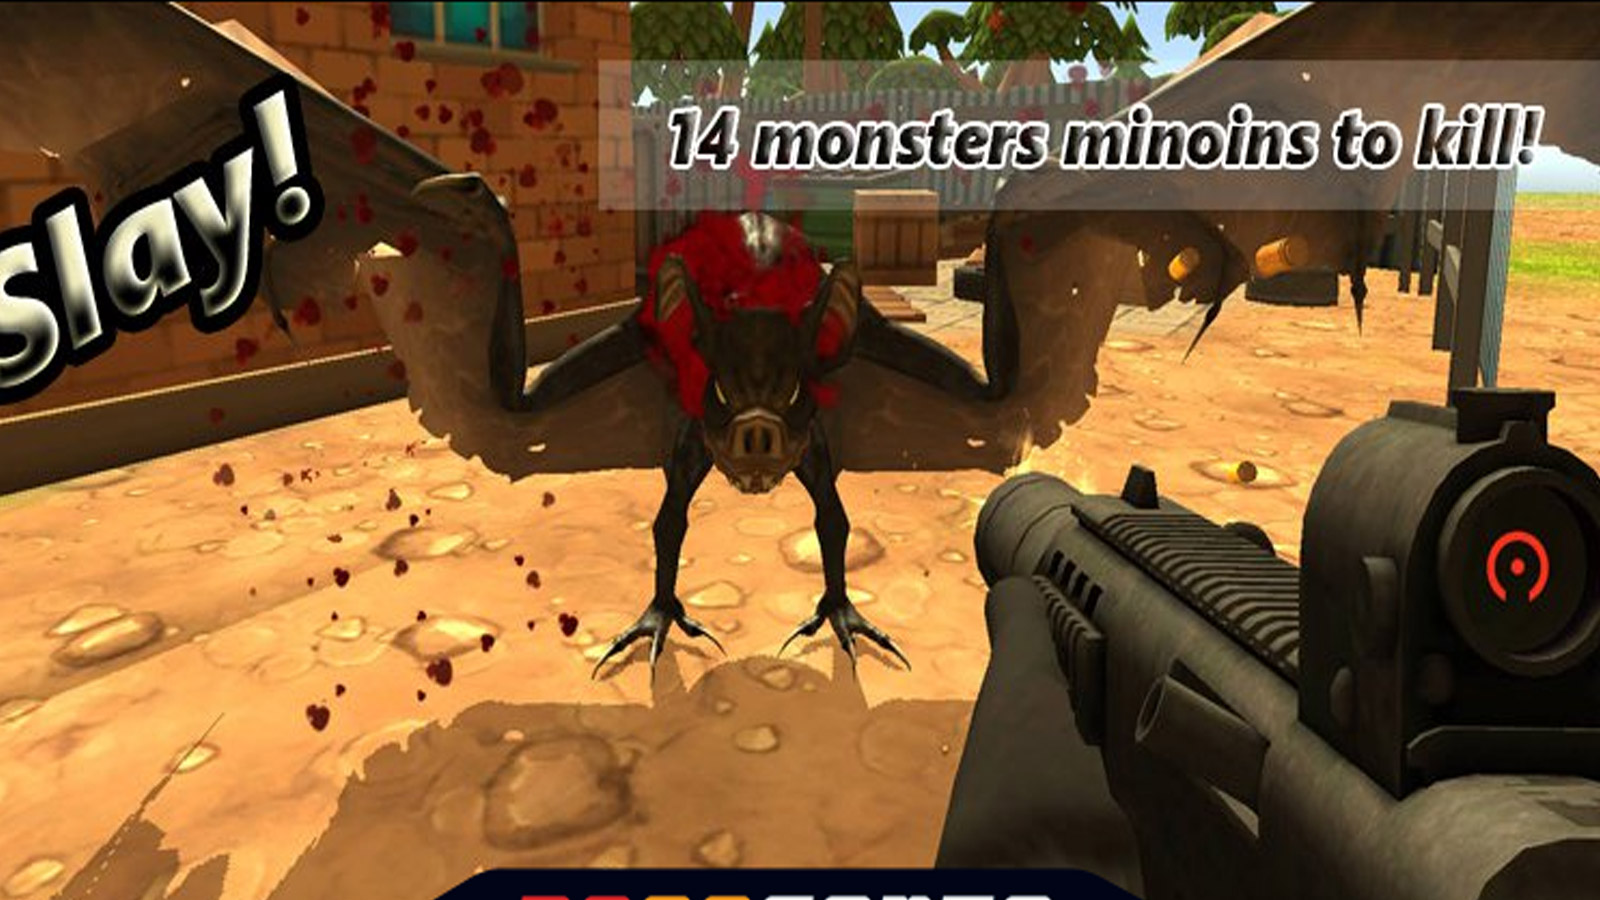 Driving Games: Monster Hunting City Shooting